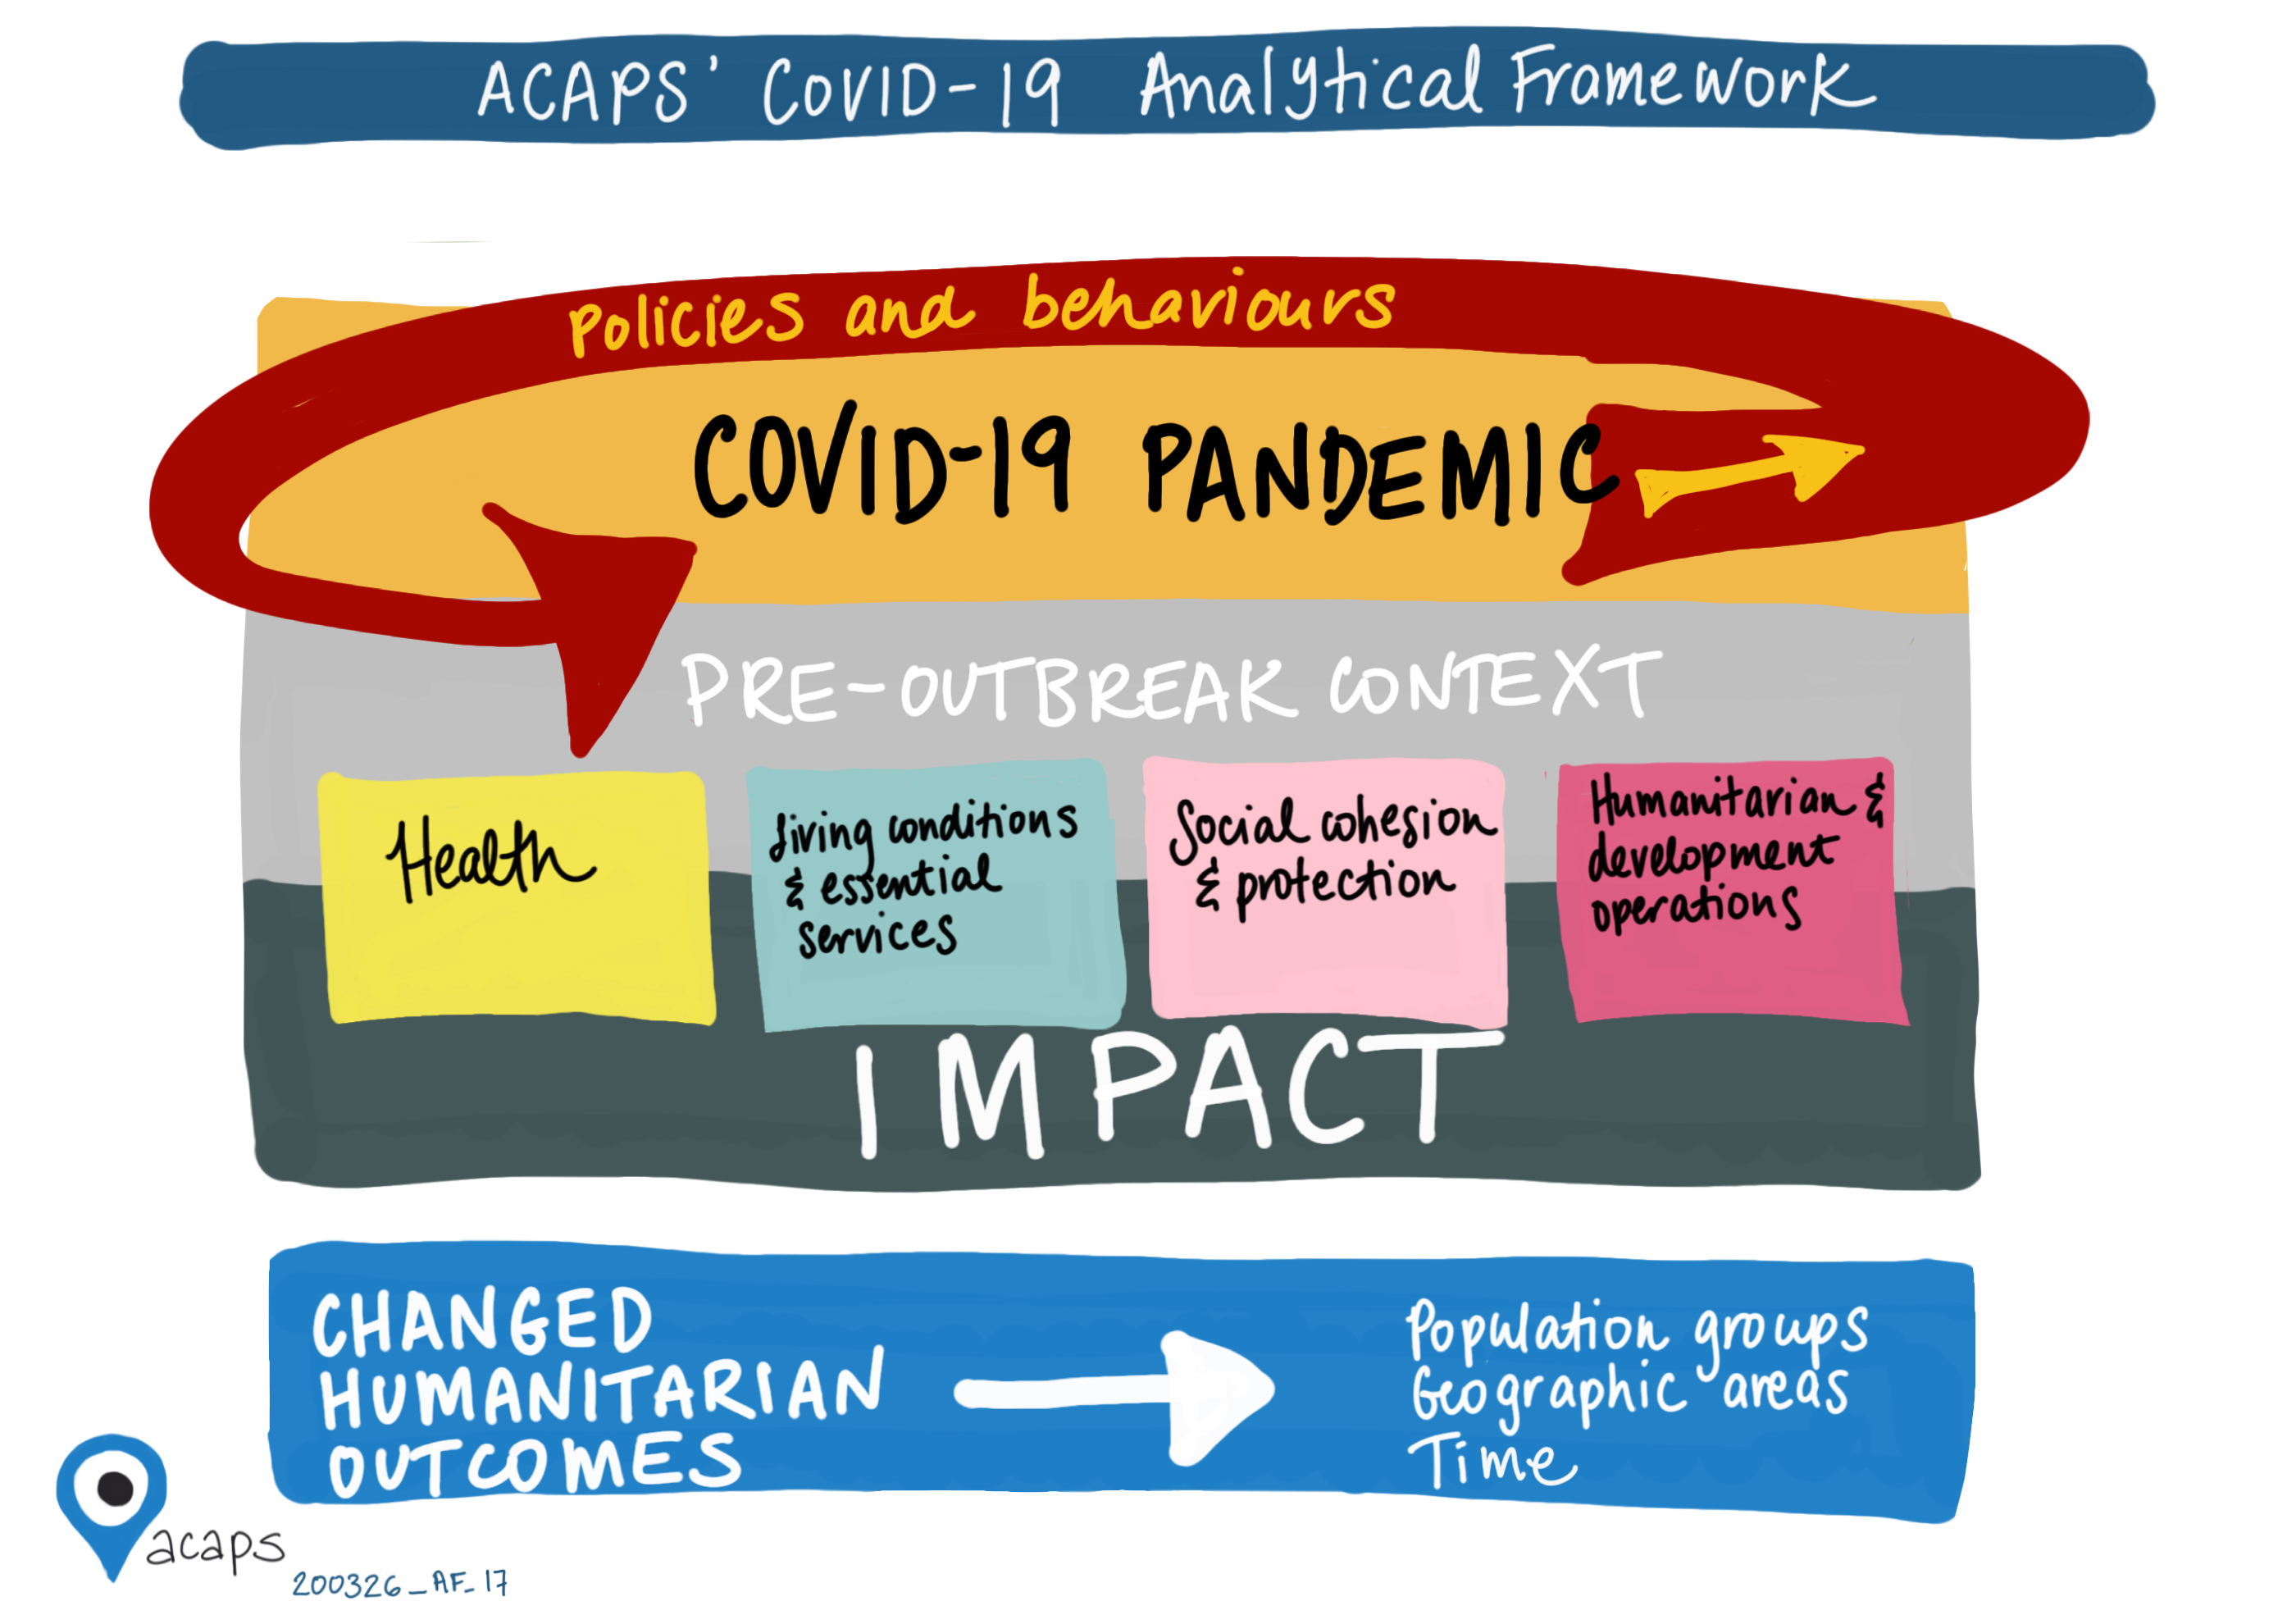 covid-19_analytical_framework_0.png